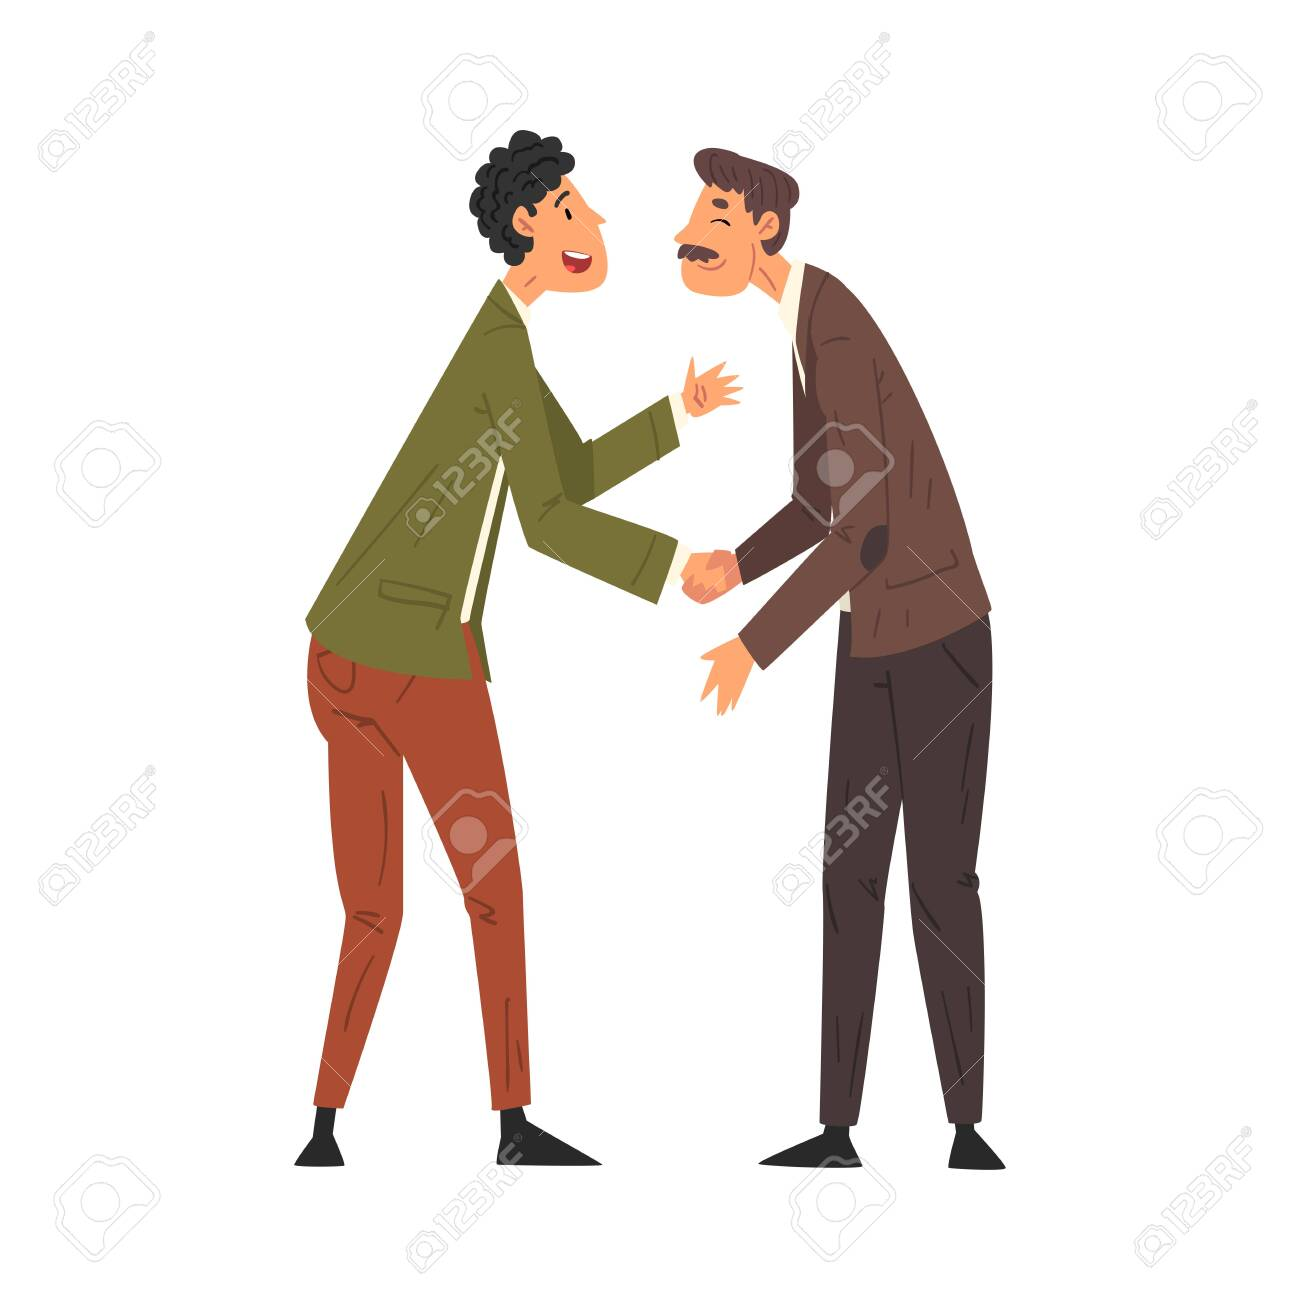 Meet of Two Friends, Business Meeting, Male Characters Handshaking and Communicating Vector Illustration - 139488701